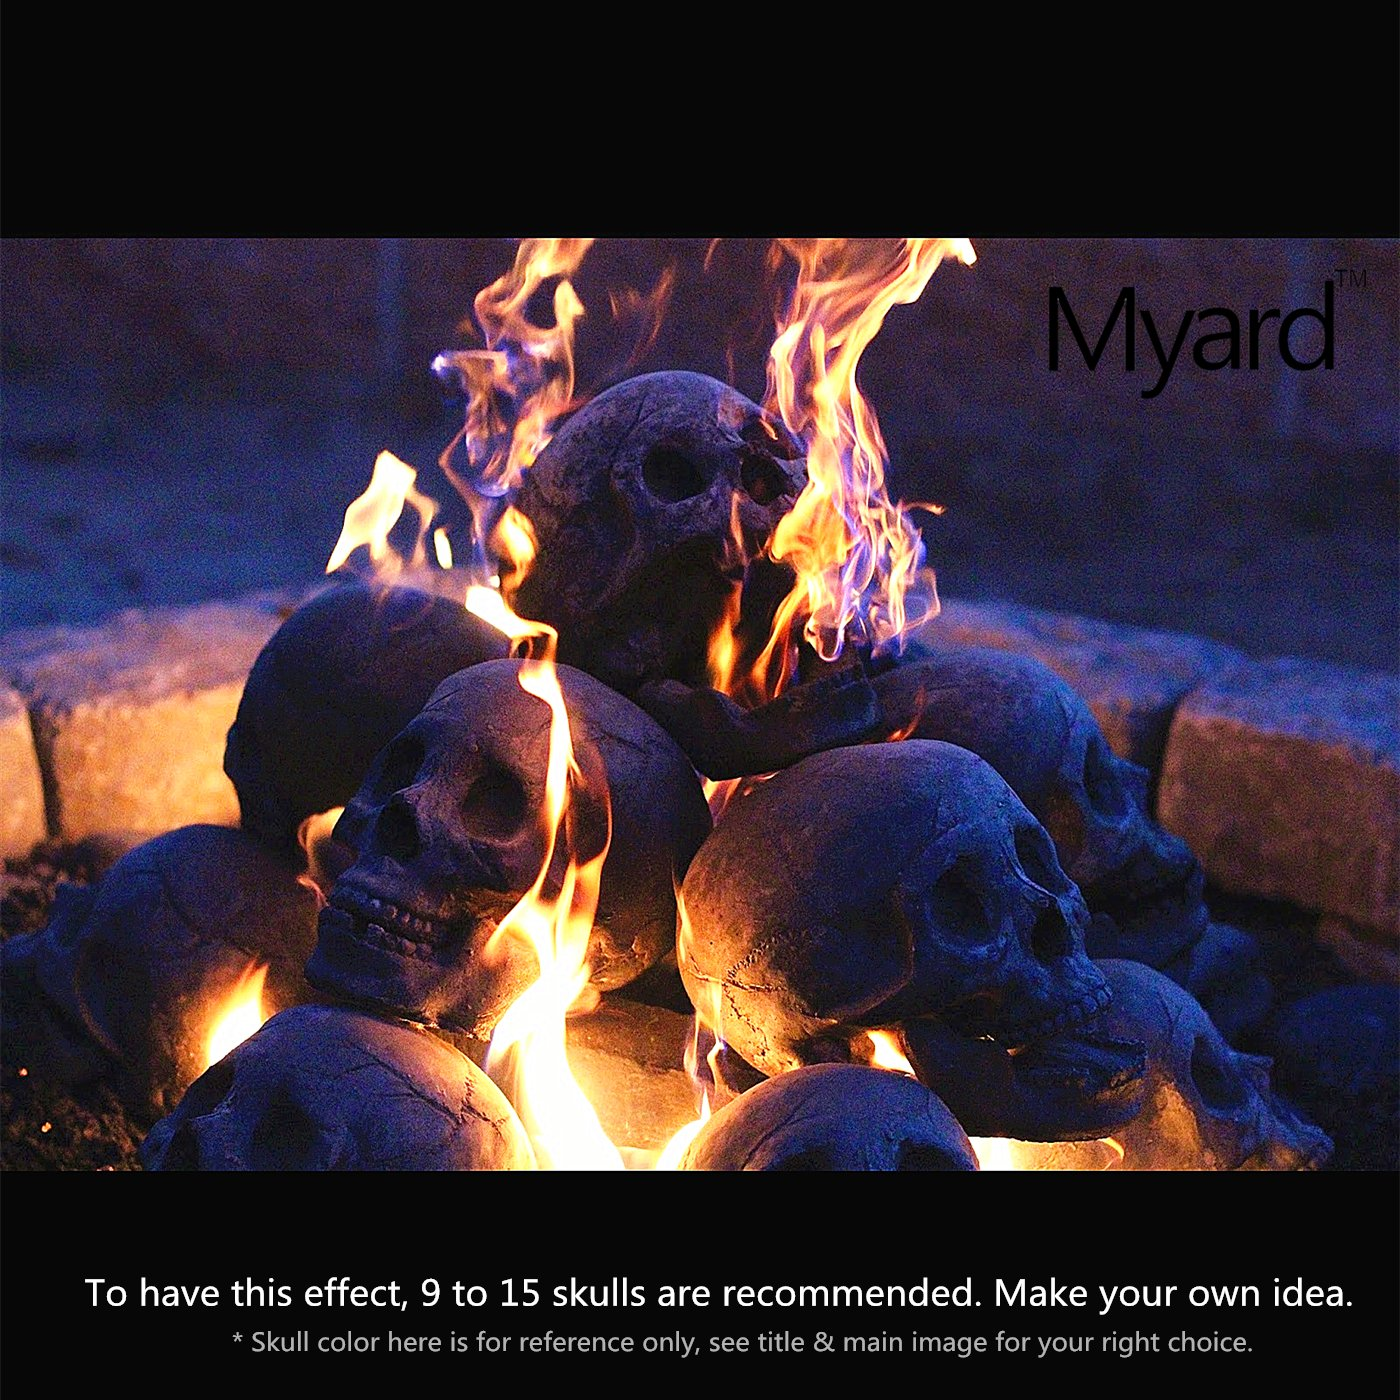 Amazon myard fireproof human fire pit skull gas log for ng amazon myard fireproof human fire pit skull gas log for ng lp wood fireplace firepit campfire halloween decor bbq white 1pk garden outdoor voltagebd Images